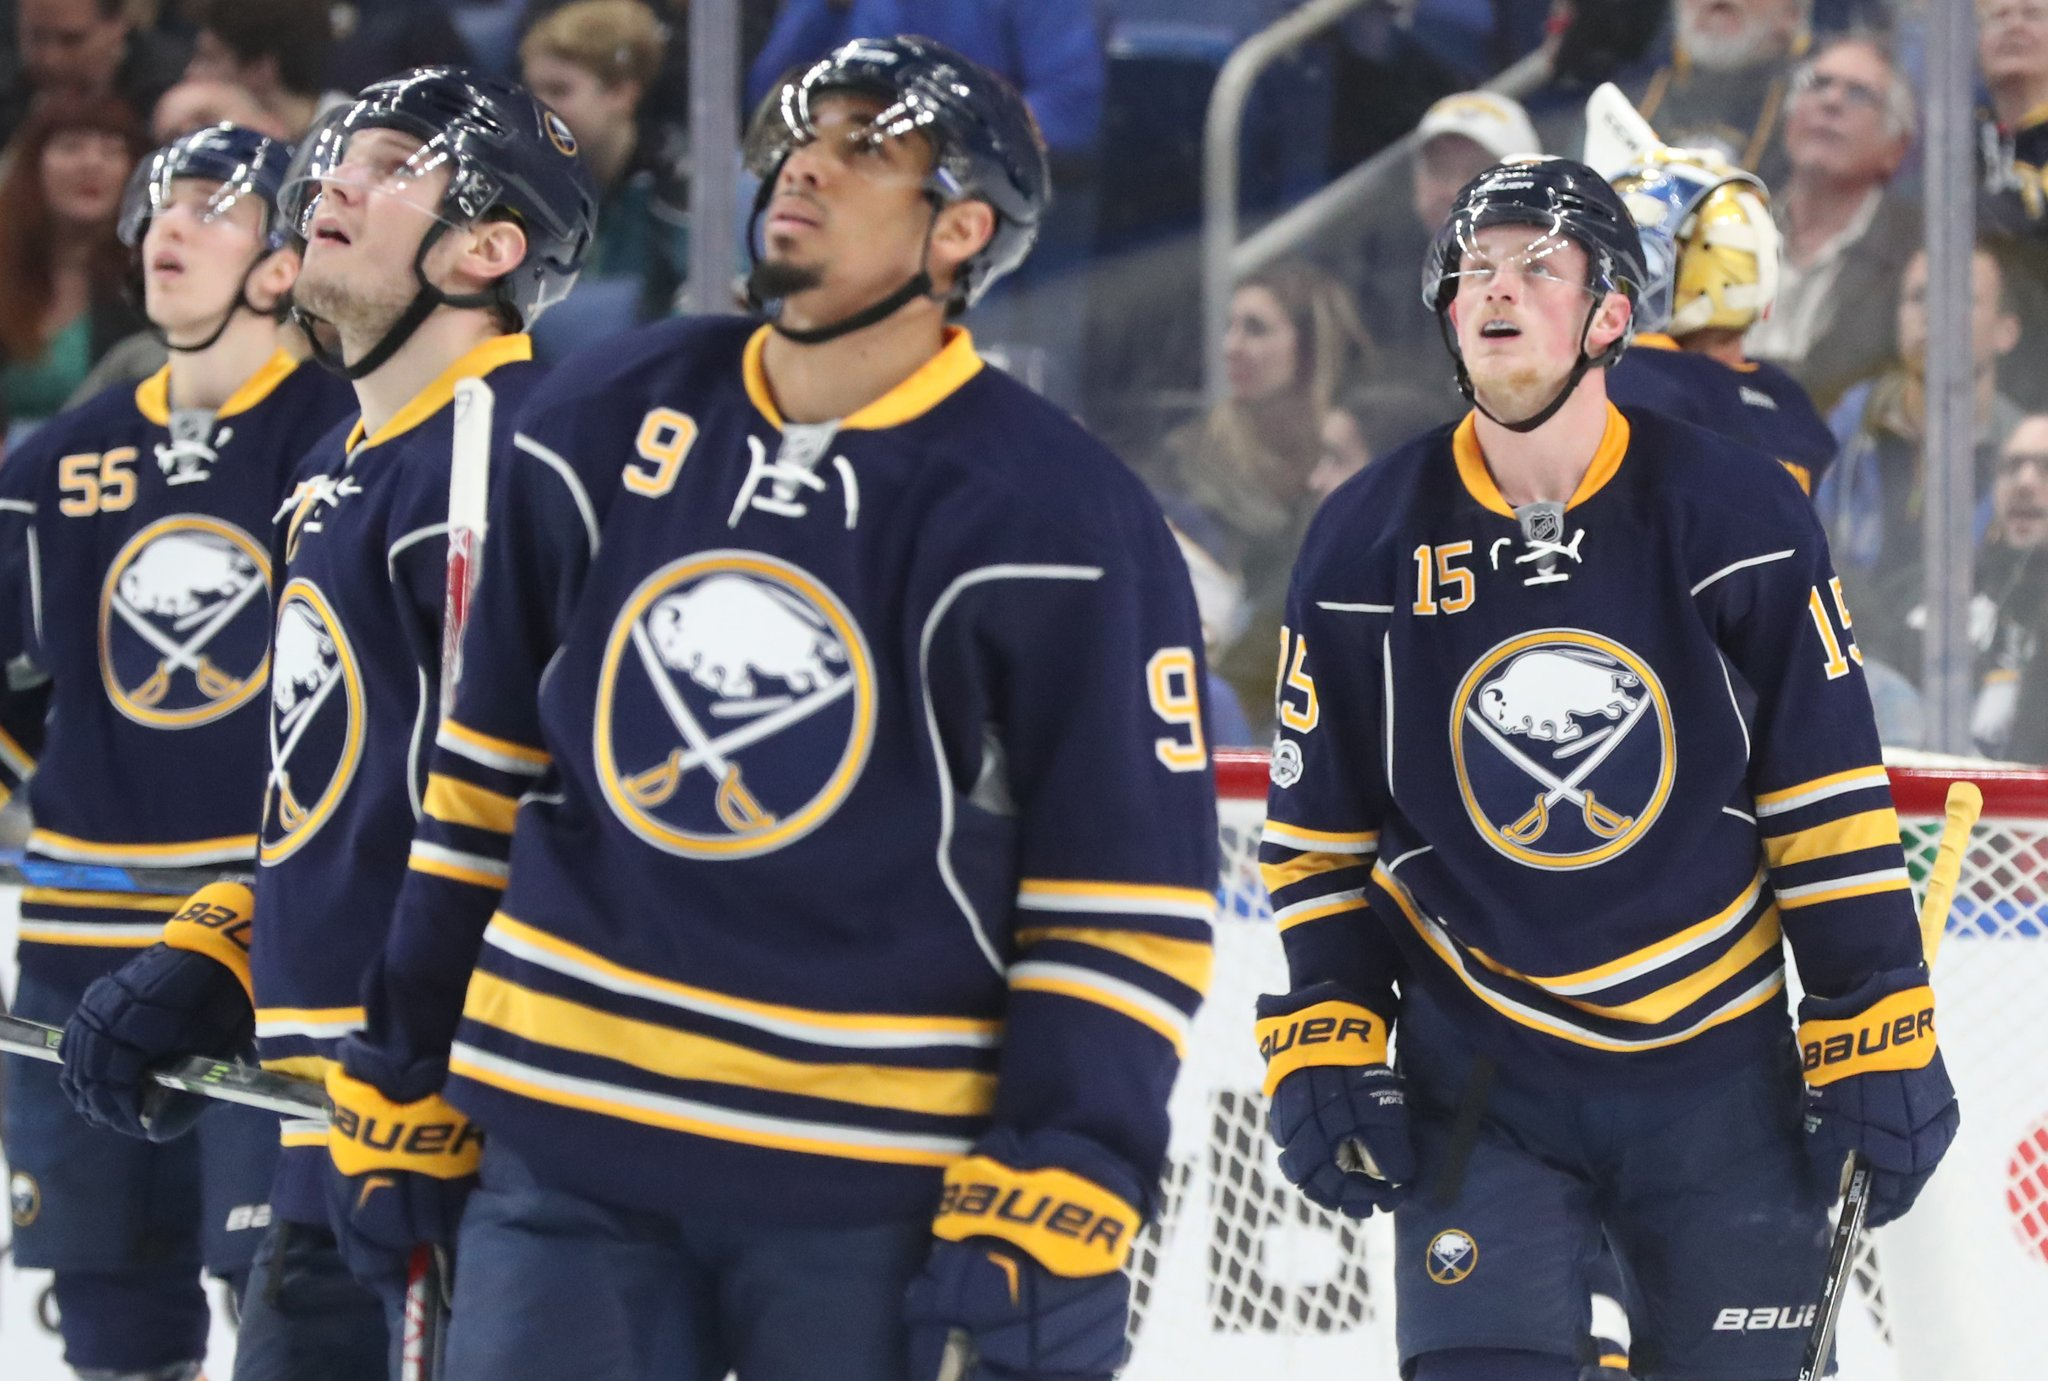 The Sabres look to build on a dramatic win over San Jose. (James P. McCoy/Buffalo News)